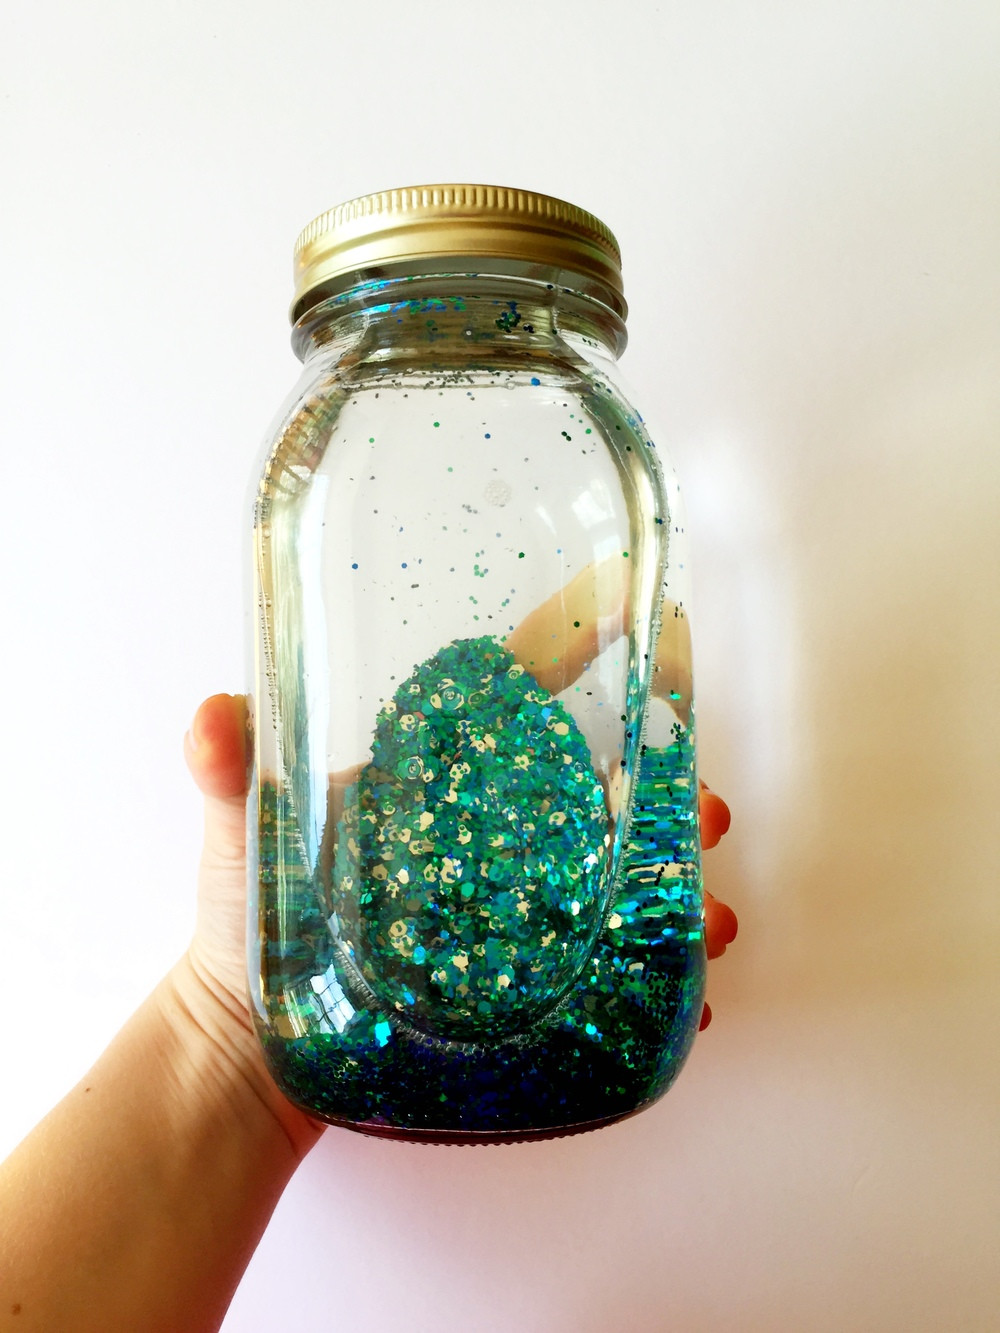 Best ideas about DIY Glitter Jar . Save or Pin DIY Mindfulness Glitter Jar — Joyfully Jenna Now.